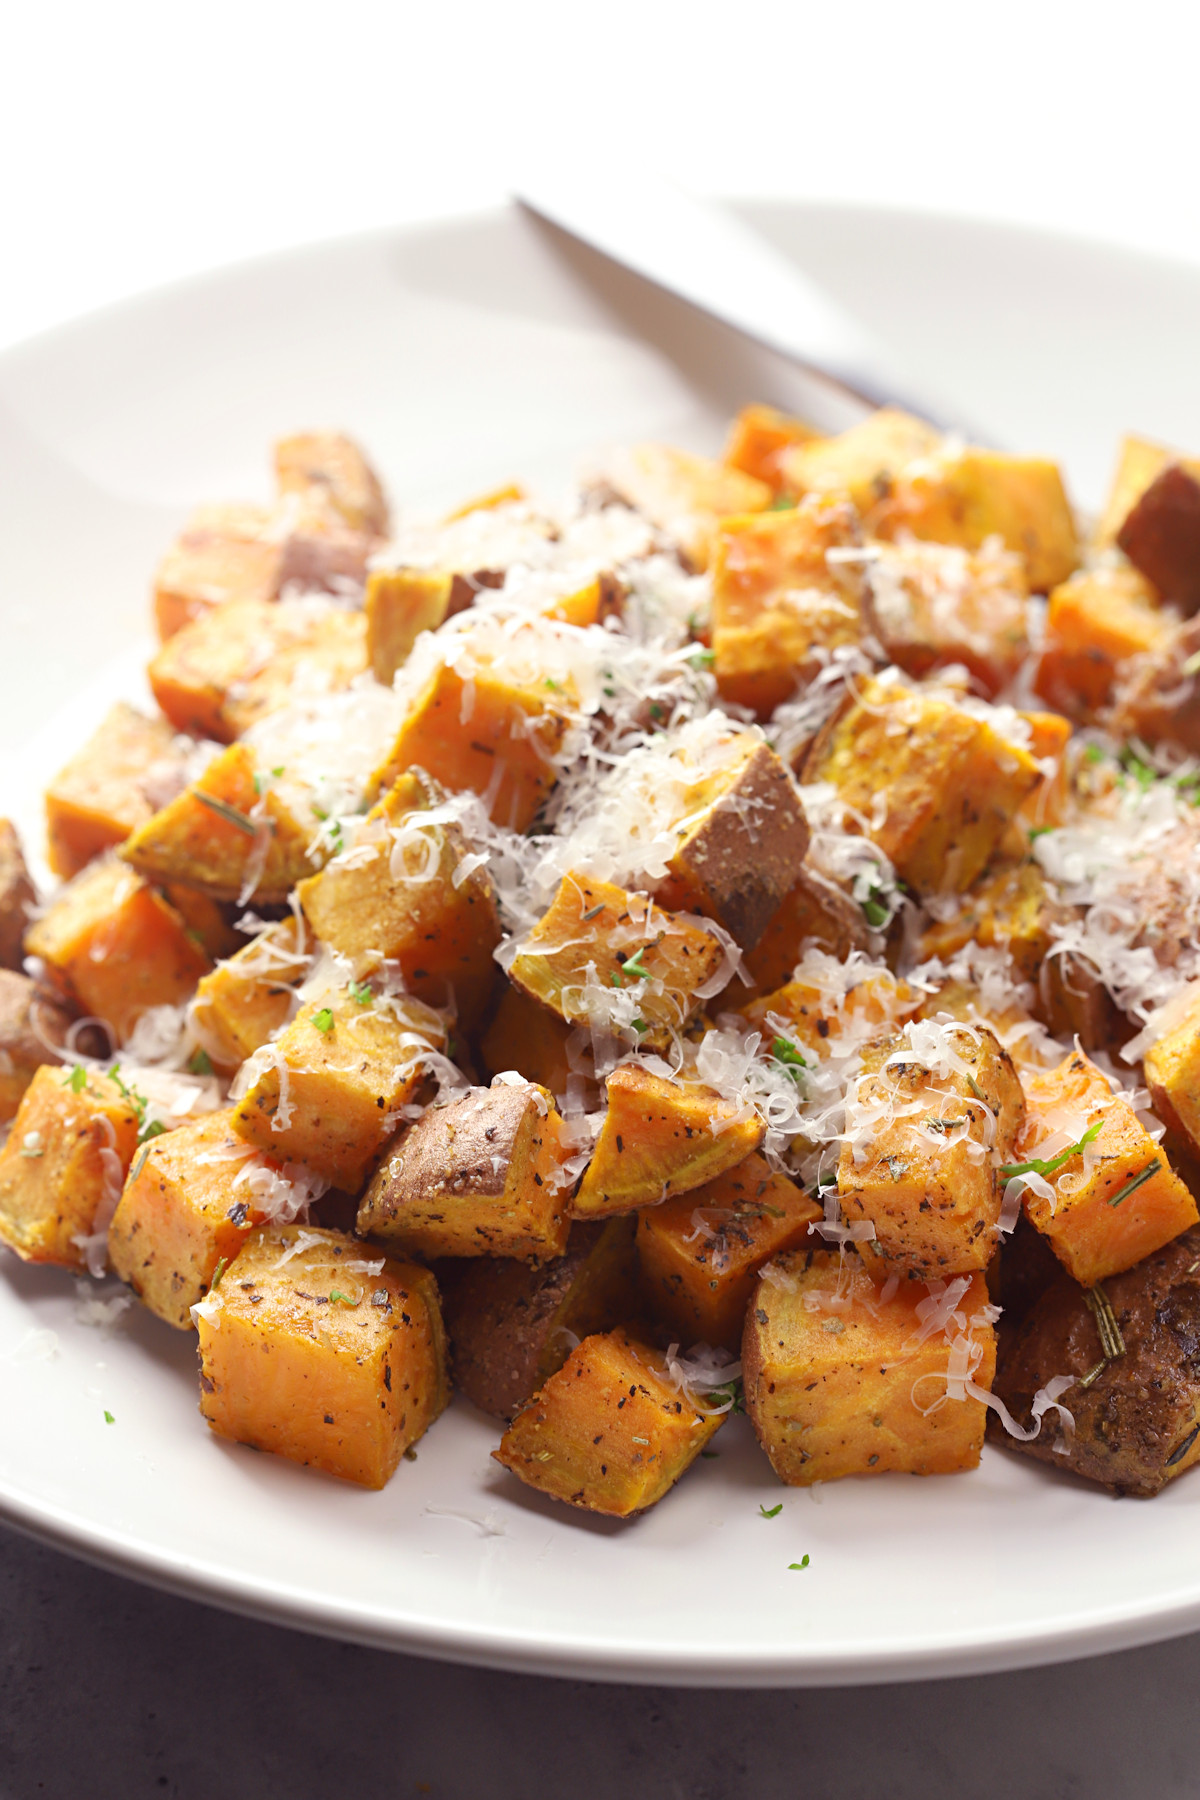 Sweet potatoes topped with grated parmesan cheese.